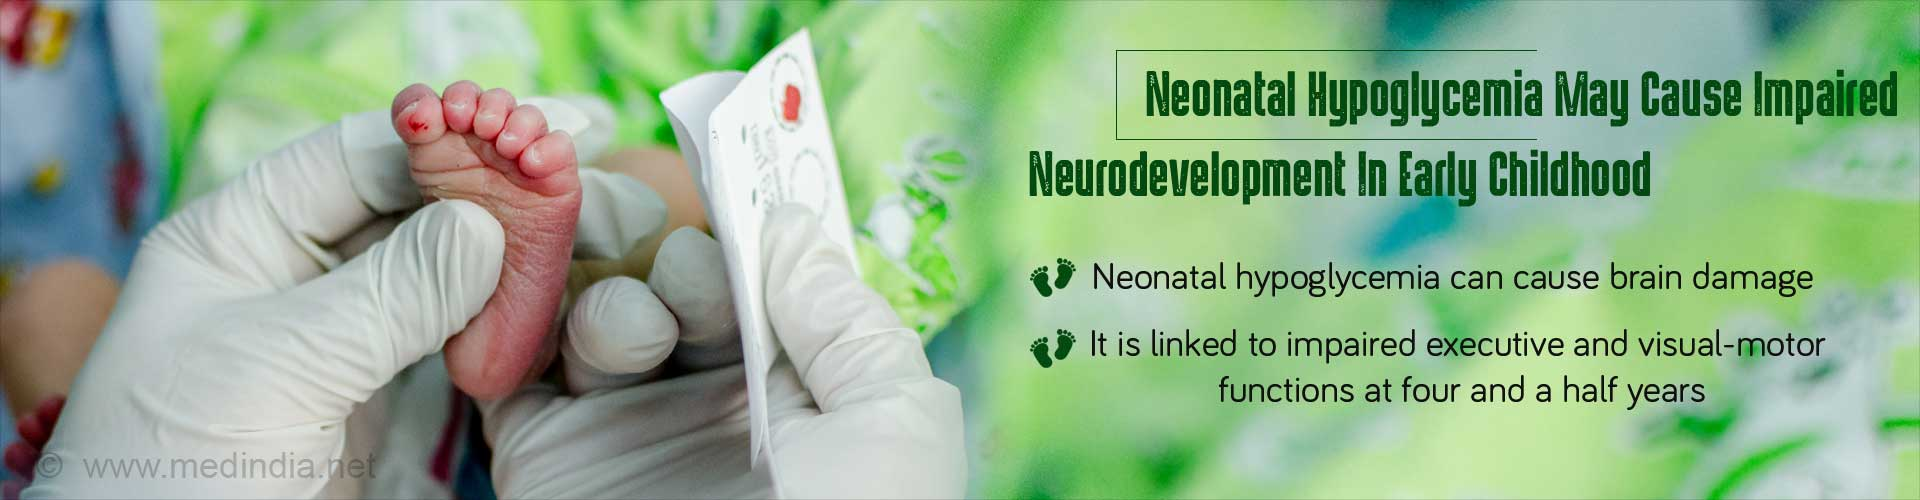 Neurodevelopmental Defects In Early Childhood Due To Neonatal Hypoglycemia â€